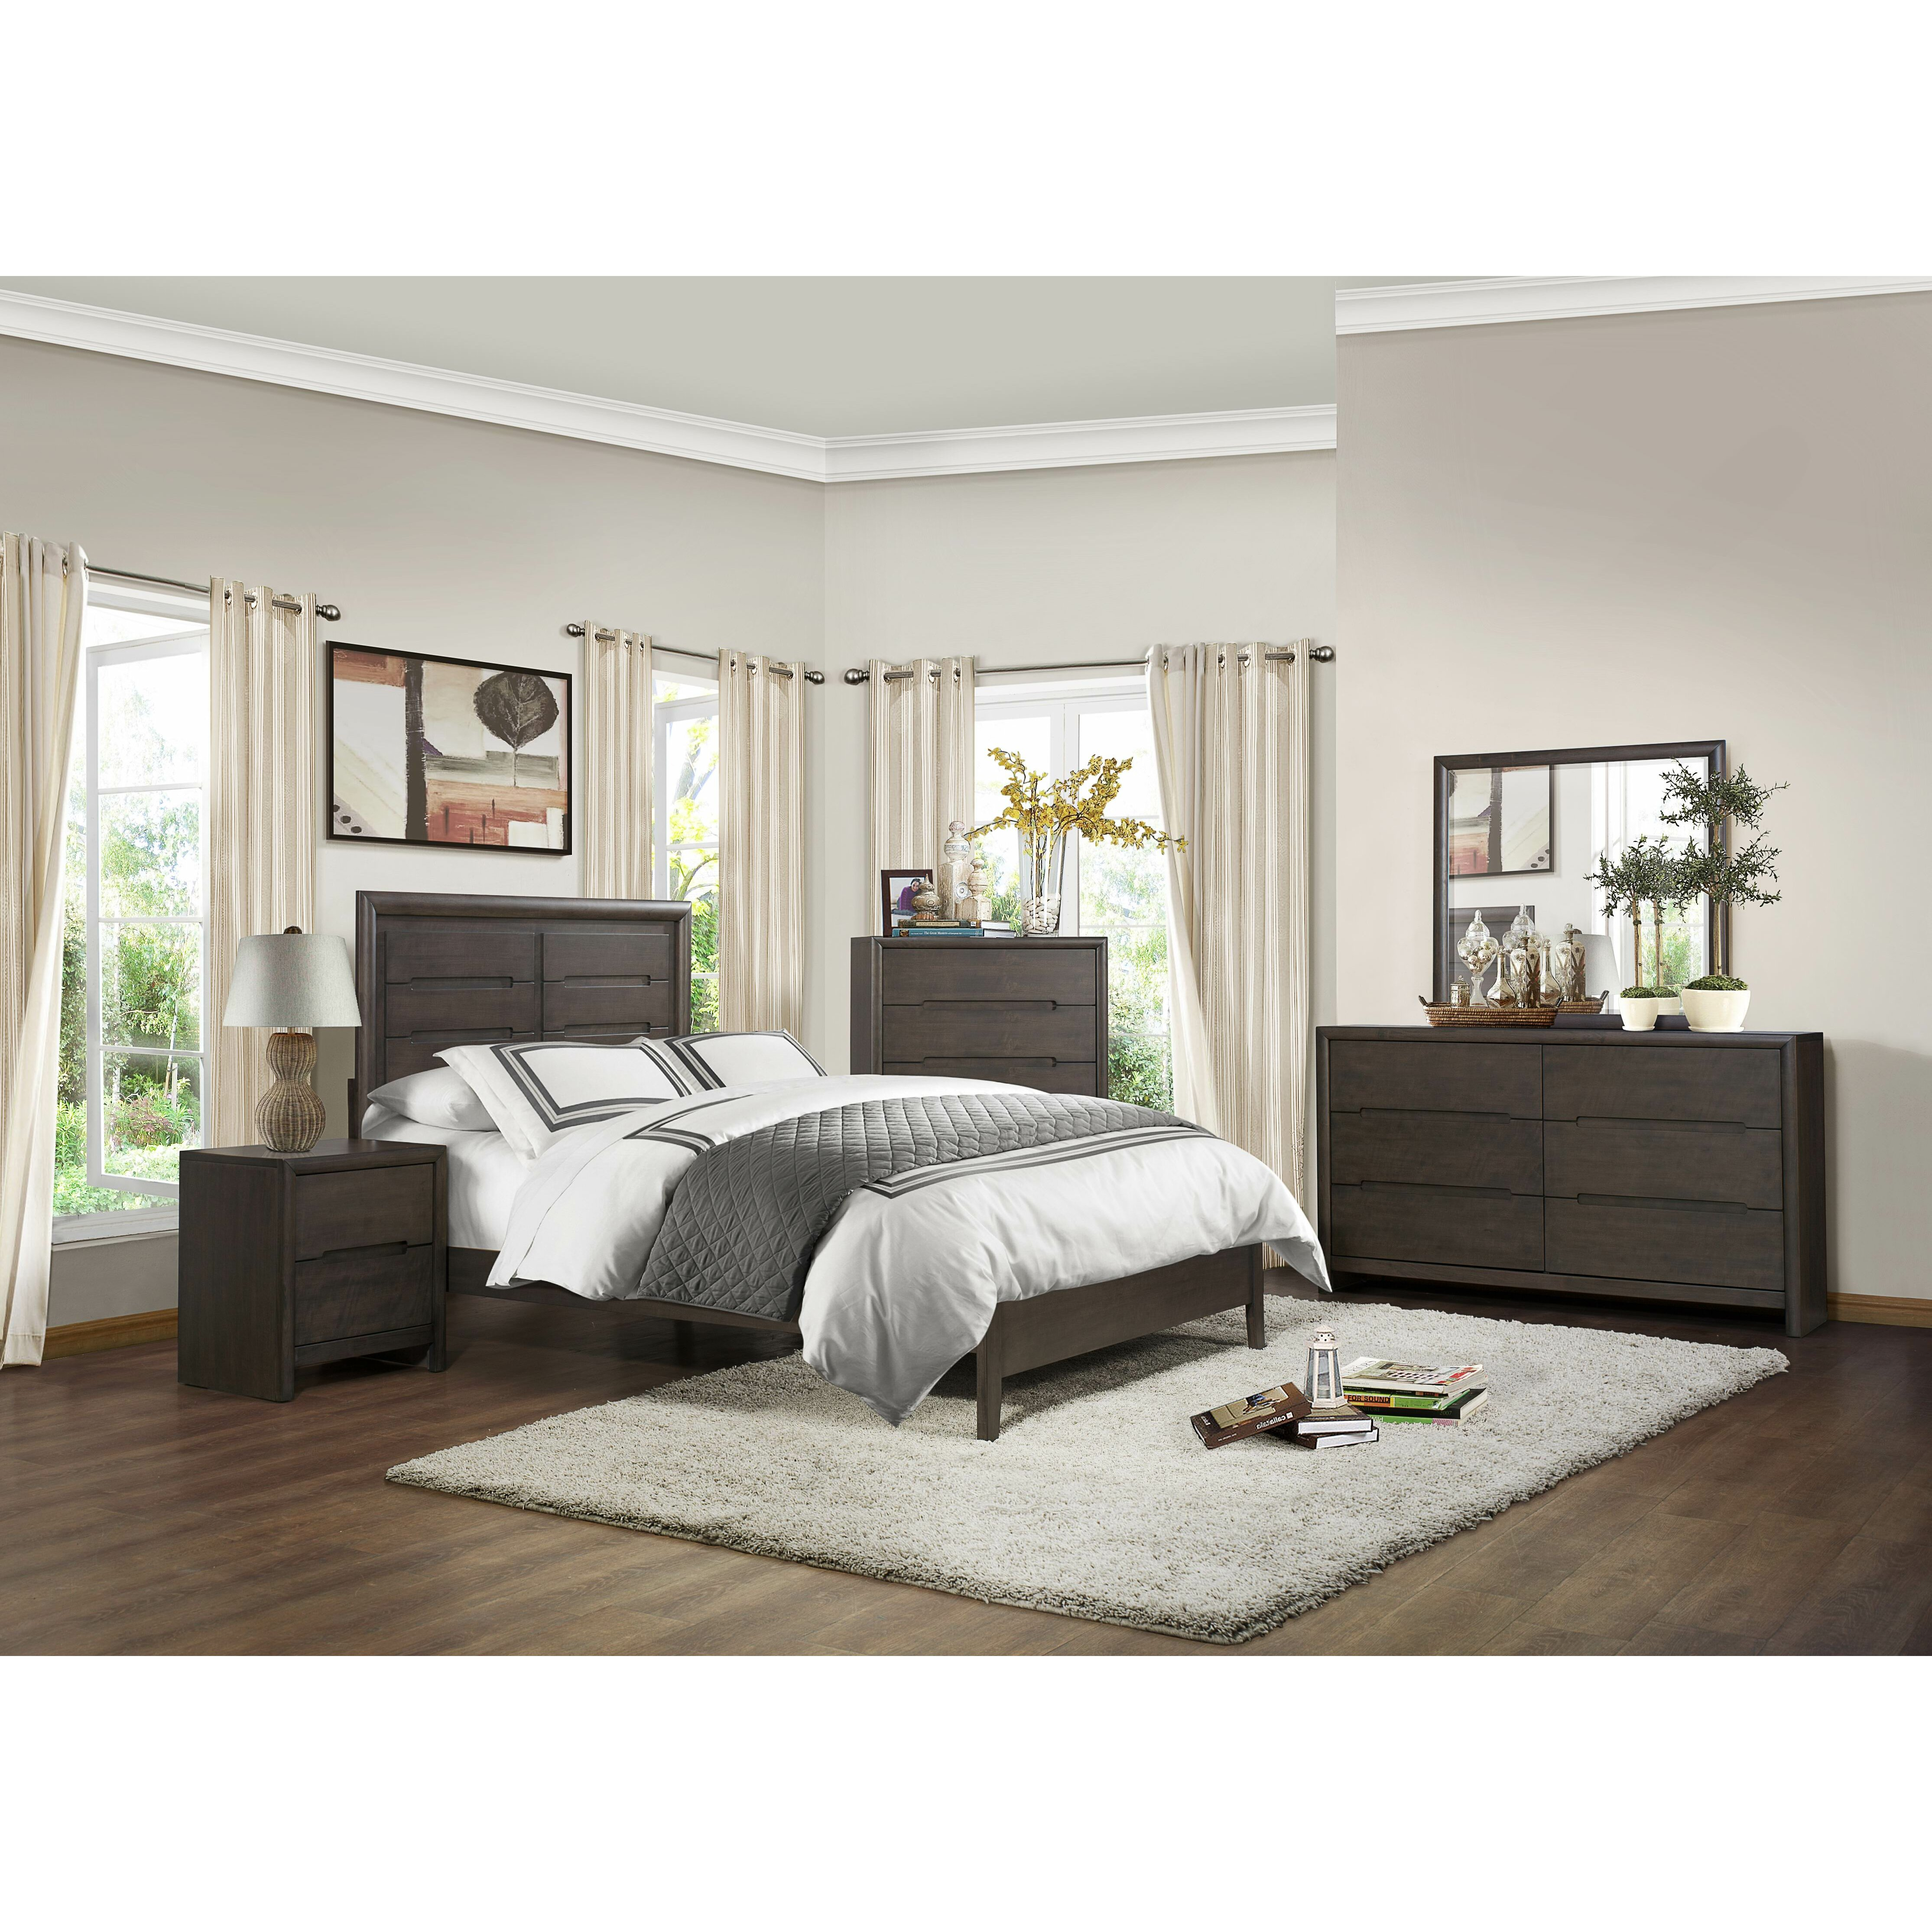 Woodhaven Hill Lavinia 2 Drawer Nightstand & Reviews